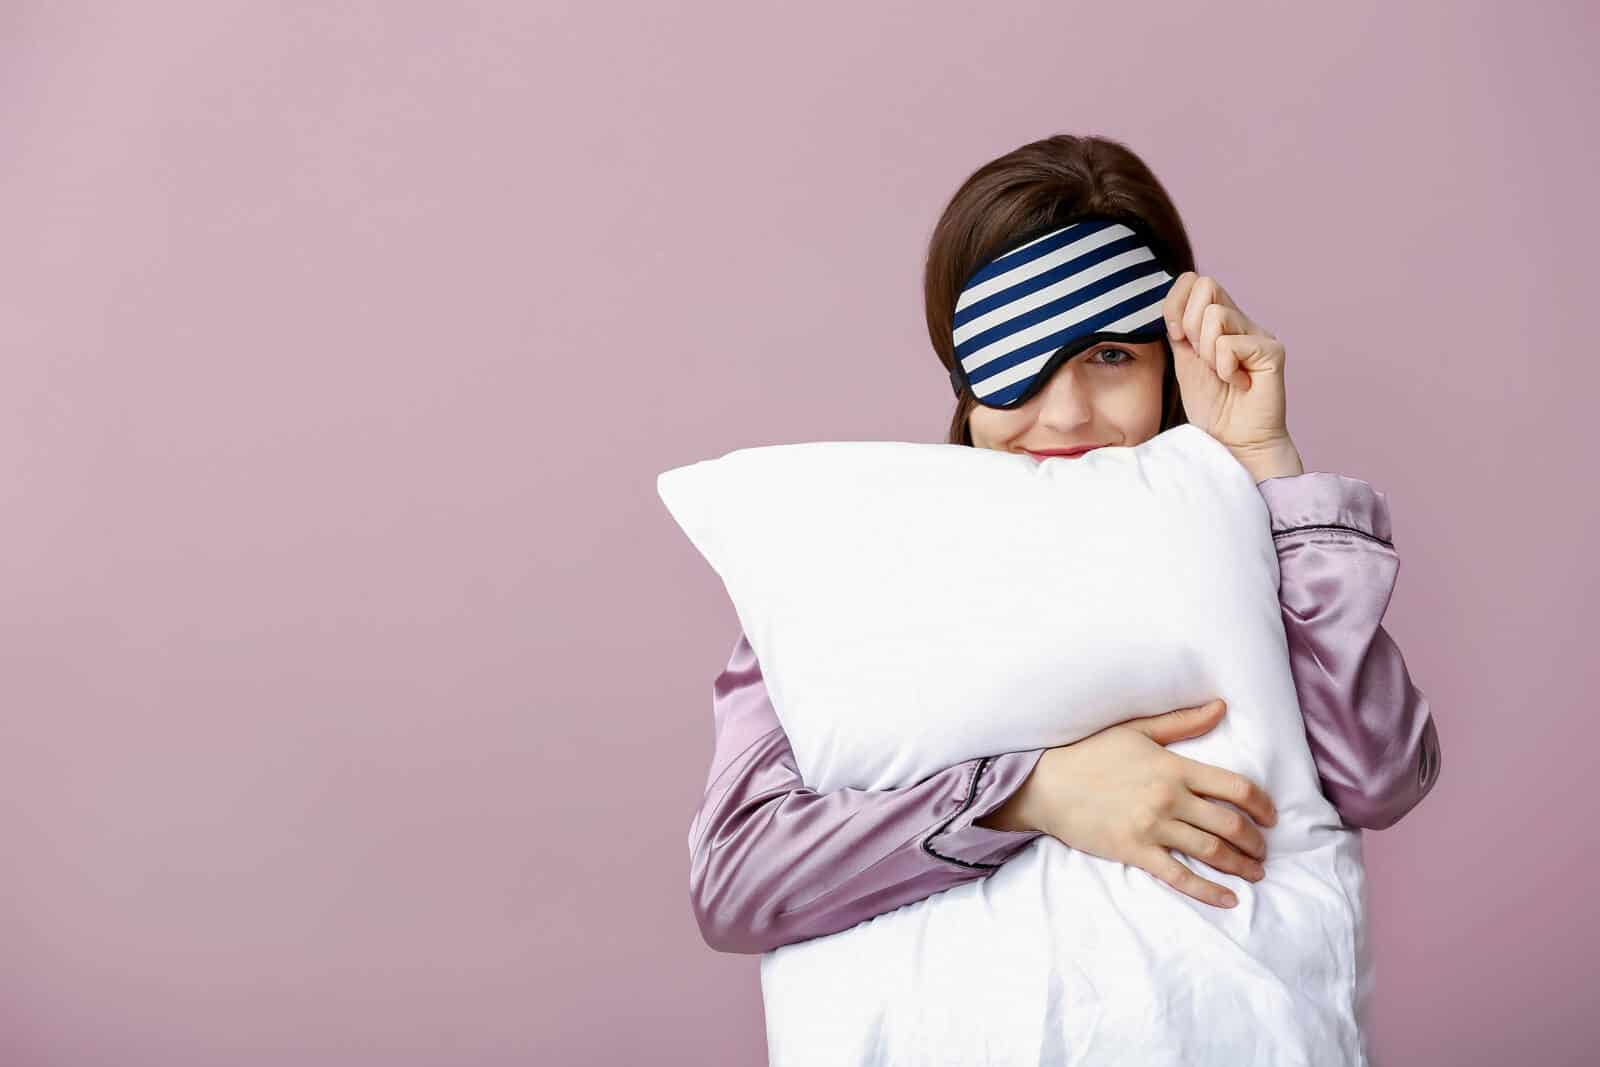 Sleepy woman with mask and pillow on color background